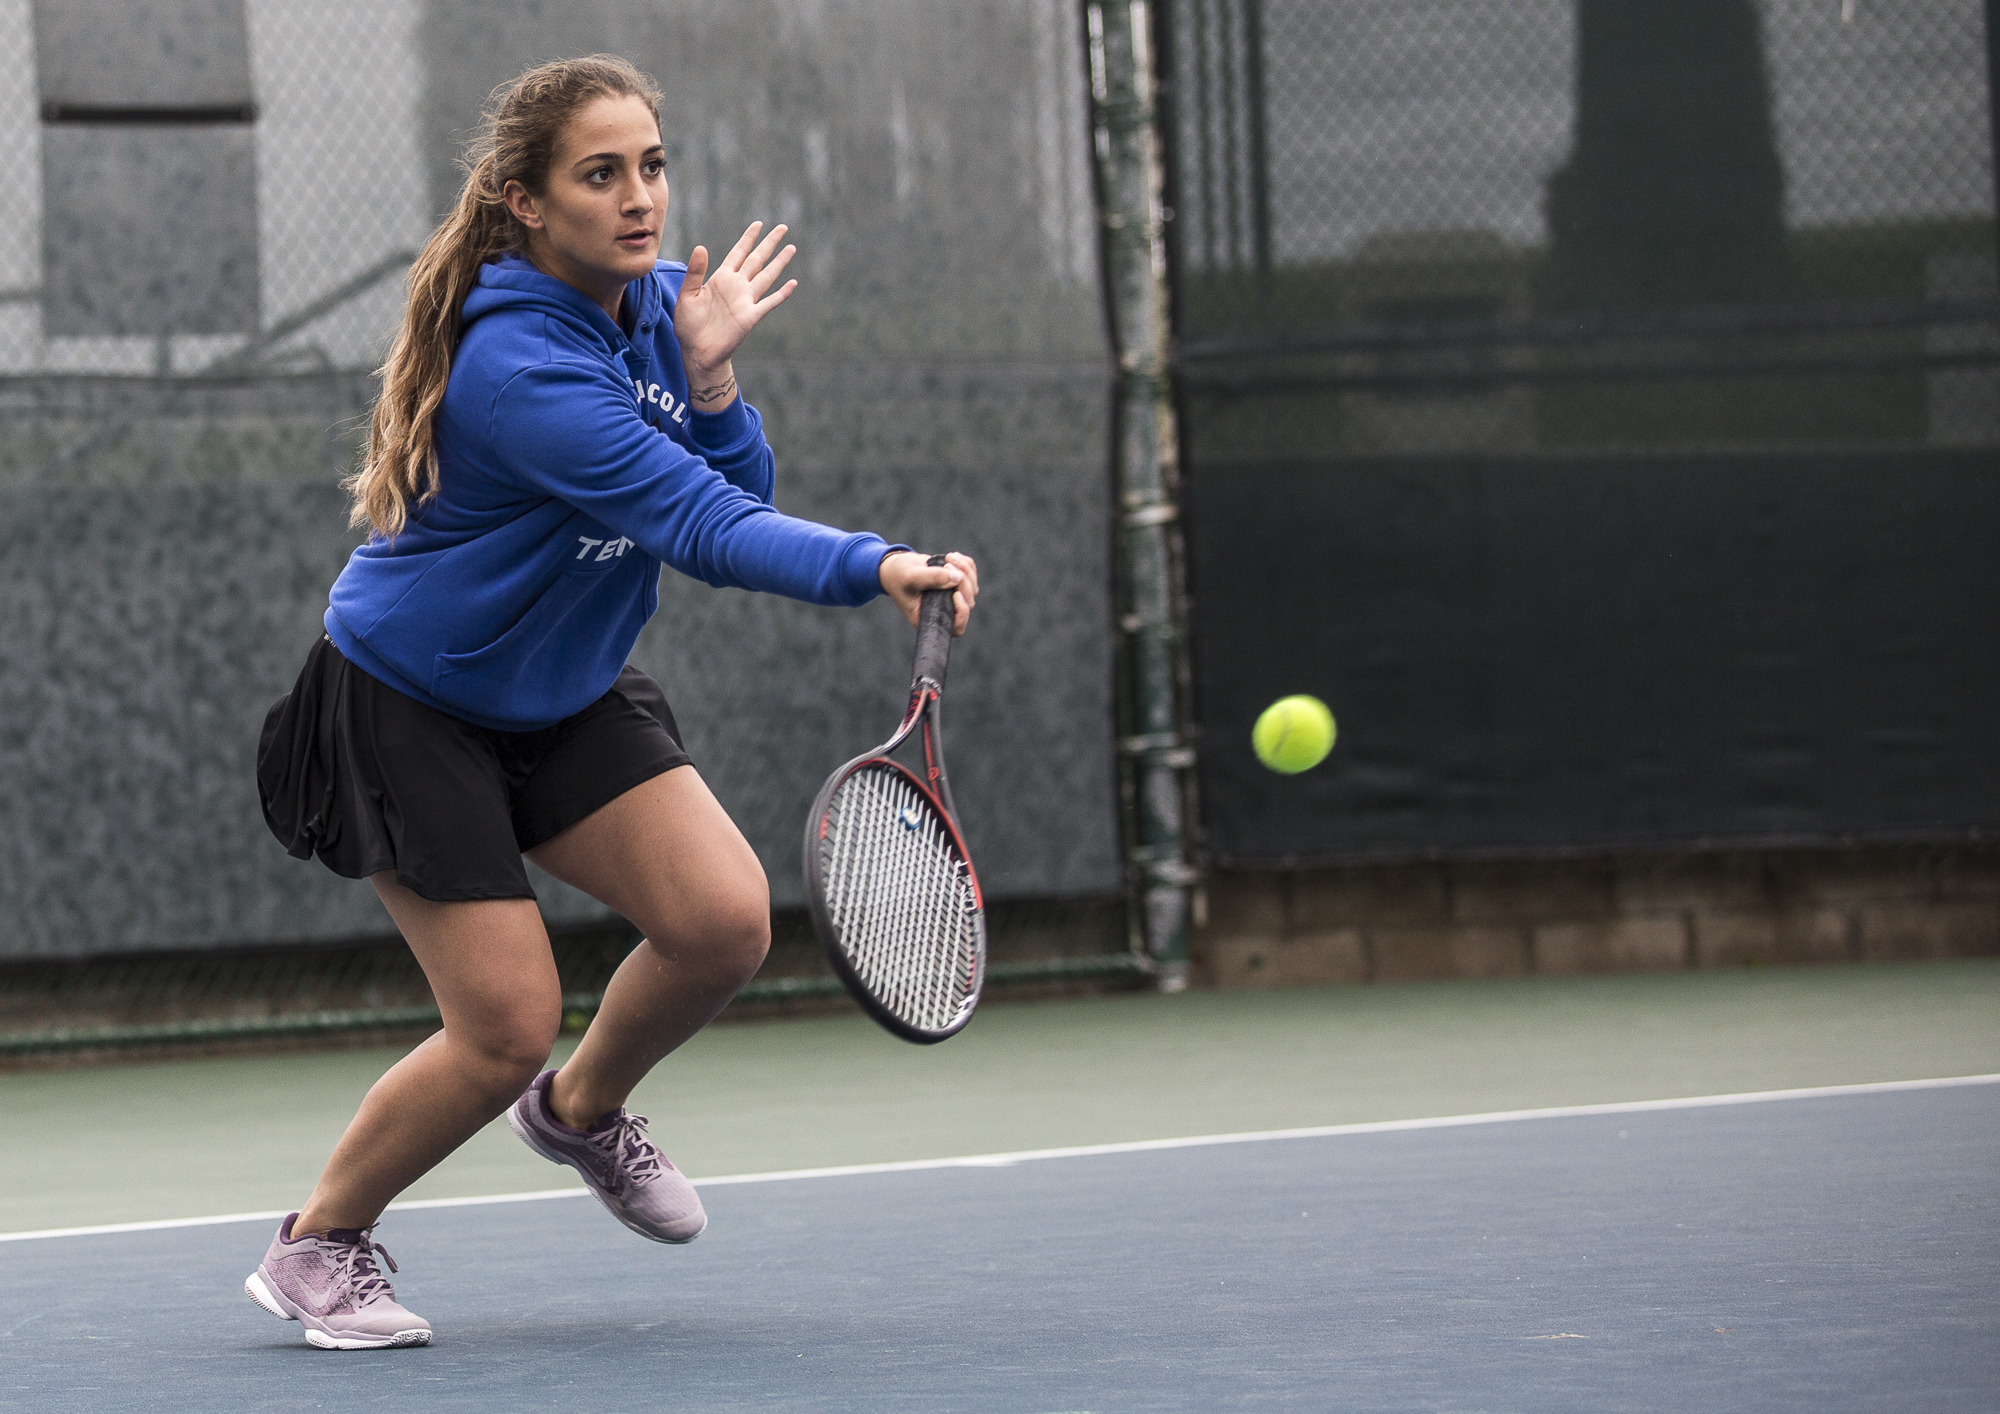 Santa Monica College Corsair freshman Mina Girit (#1, doubles) lunges forward for a powerful, short forehand swing back at her Glendale City College Vaquero opponents, consisting of sophomore Srna Lepchevska (cq) and sophomore Hailey McNall (cq), during her doubles game at the Ocean View Park Tennis Courts in Santa Monica, California on Tuesday, March 20 2018. The single set that Girit and her partner Abby Mullins played consisted of a 2 – 8 set loss, which contributed to the 0-6 match loss for the team. (Matthew Martin/Corsair Photo).